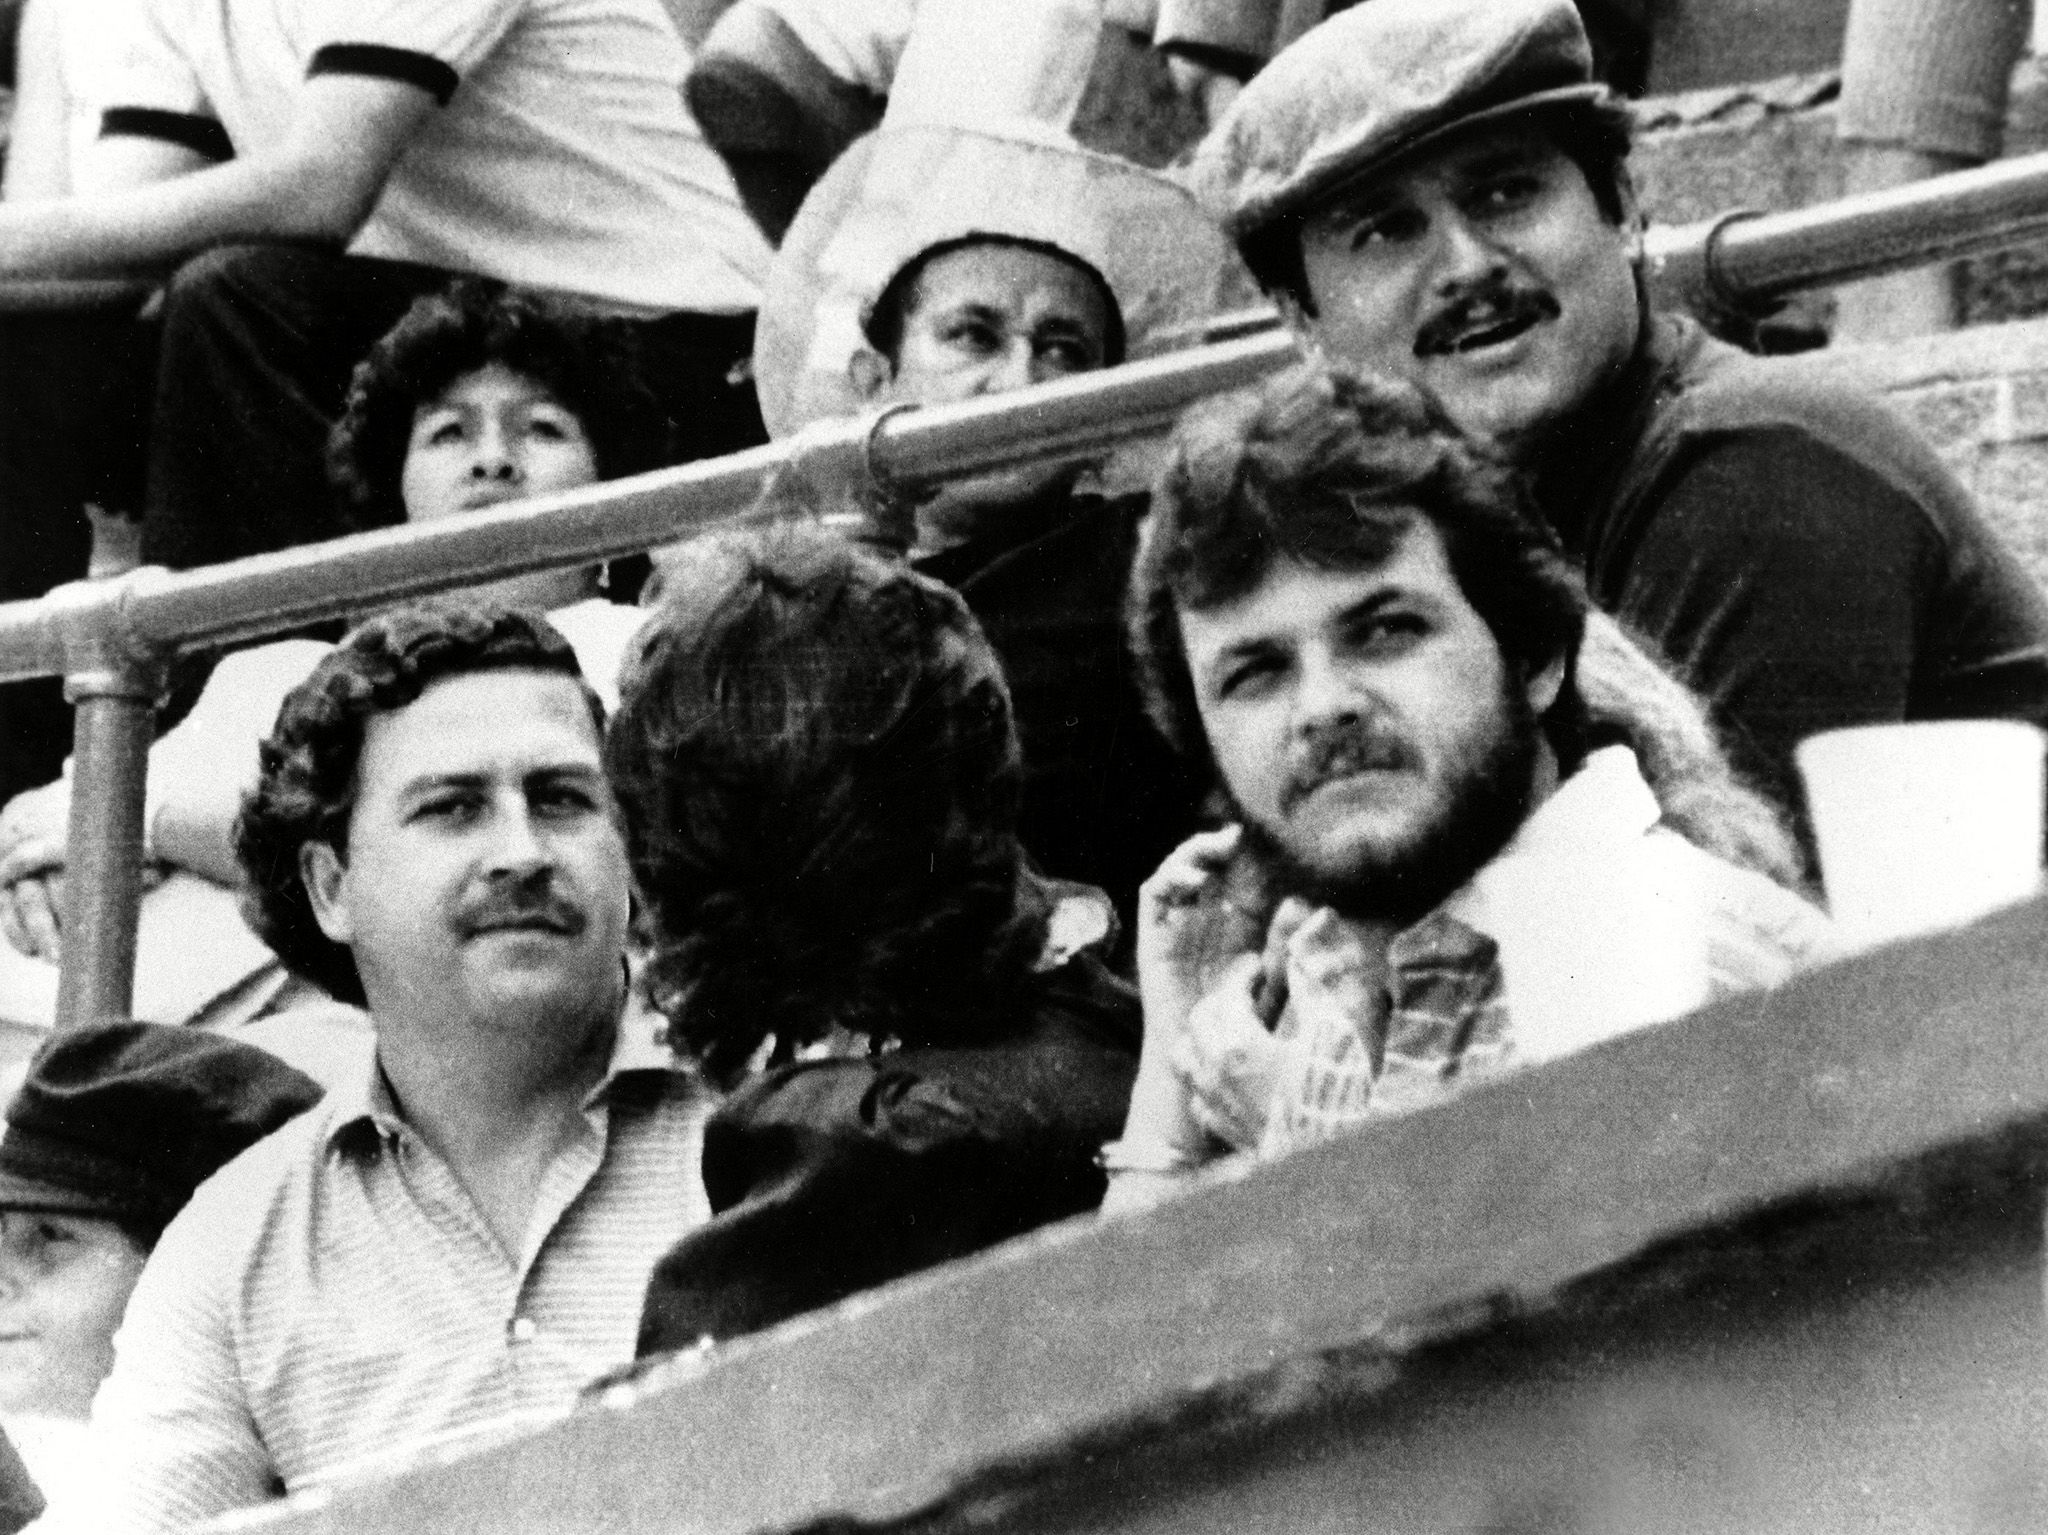 Pablo Escobar, left, and Jorga Luis Ochoa, right with hat, the two leaders of the Medellin... [Photo of the day - می 2019]